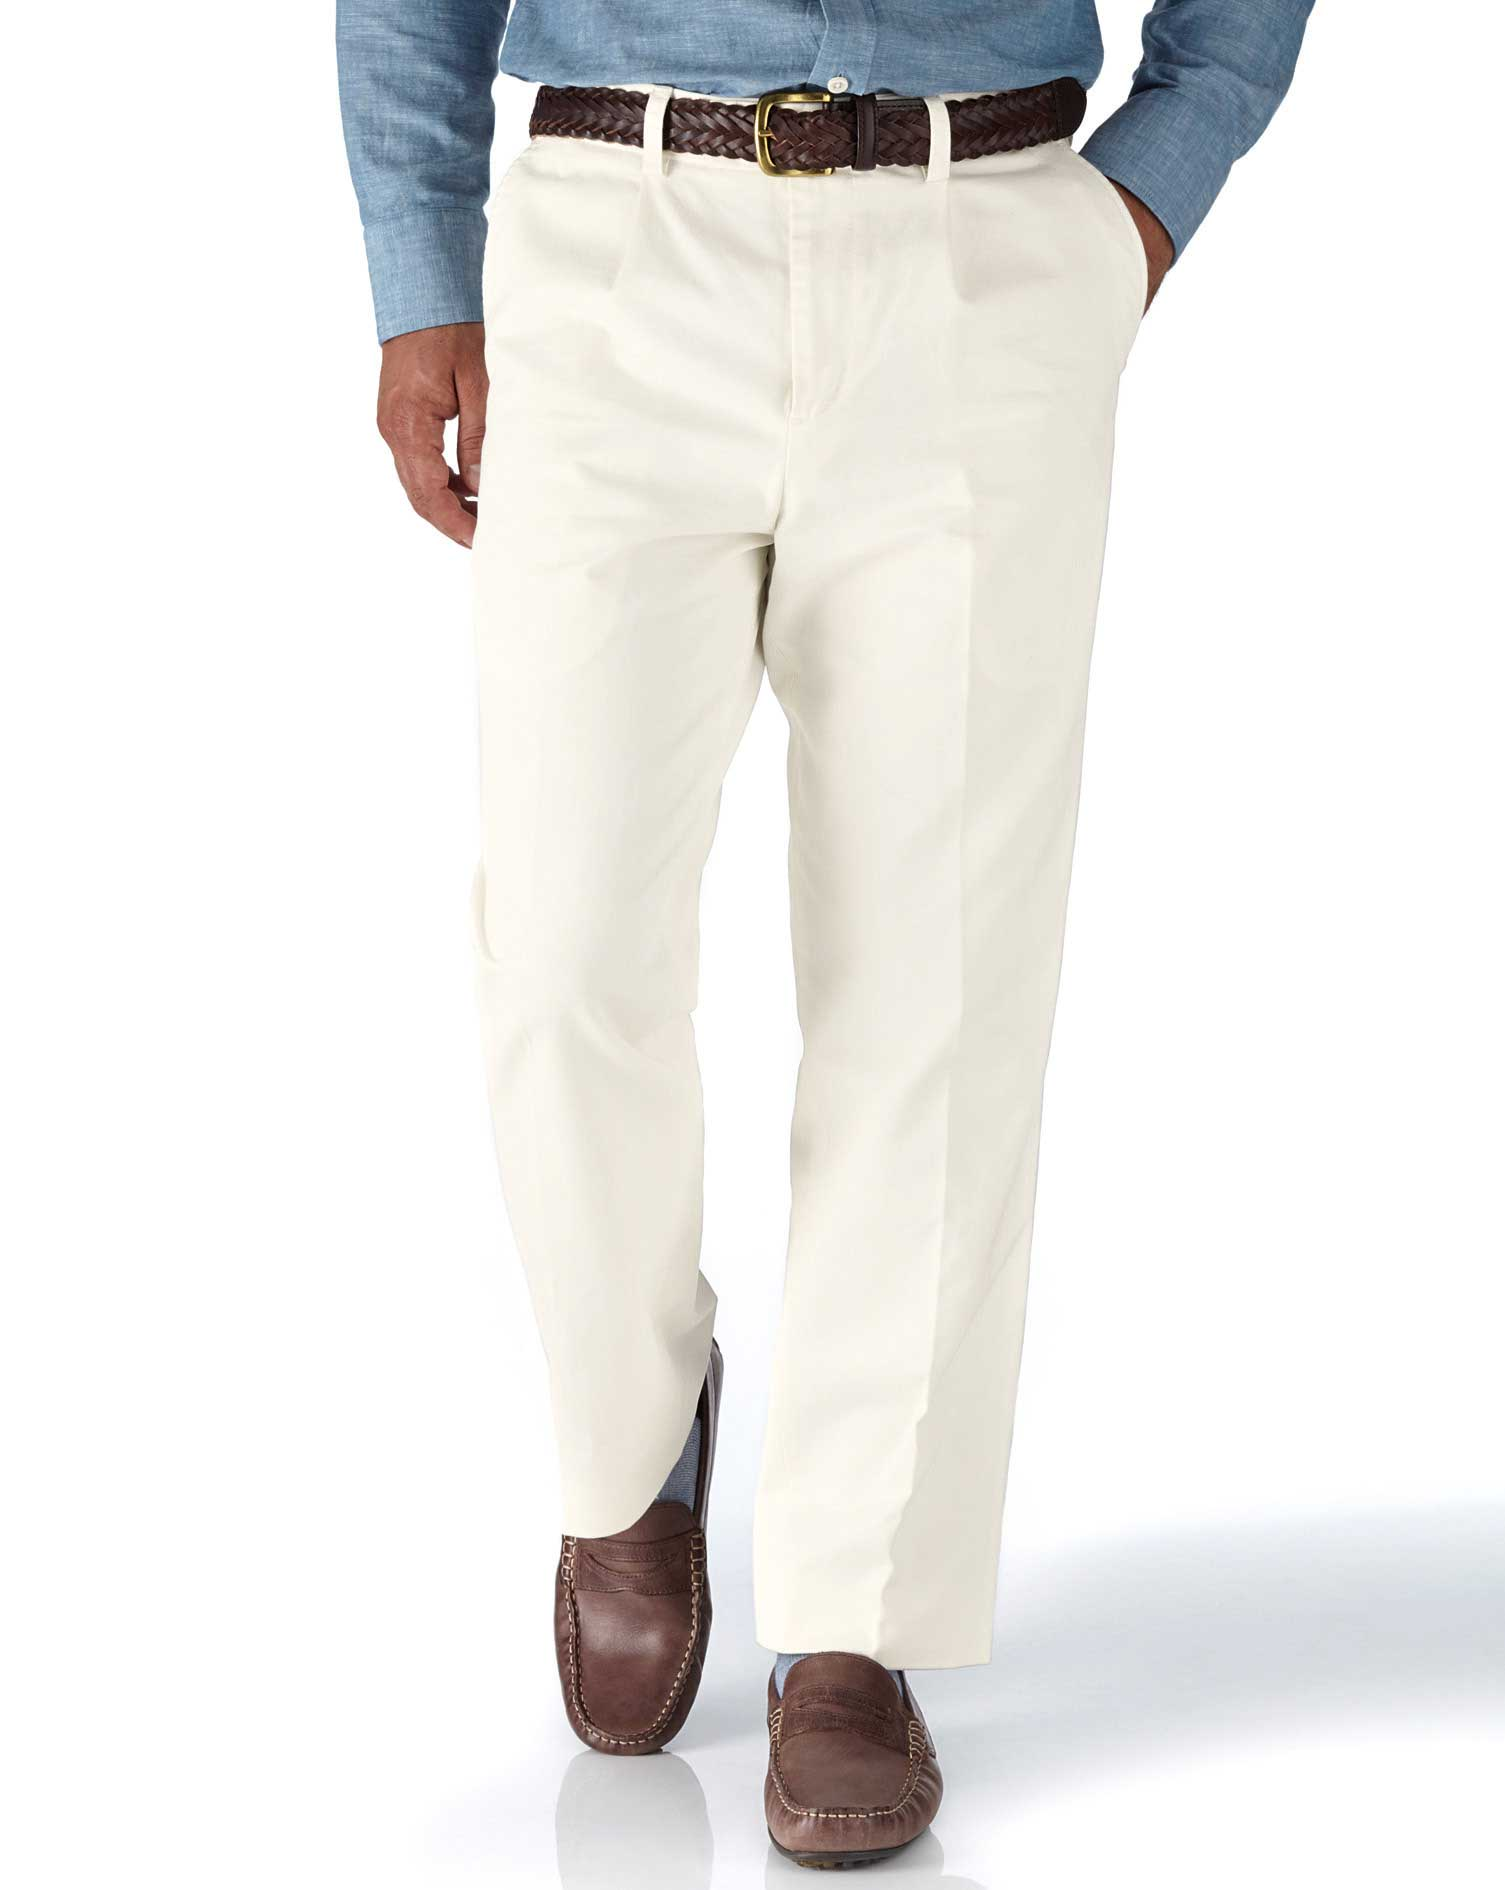 Chalk White Classic Fit Single Pleat Washed Cotton Chino Trousers Size W38 L34 by Charles Tyrwhitt